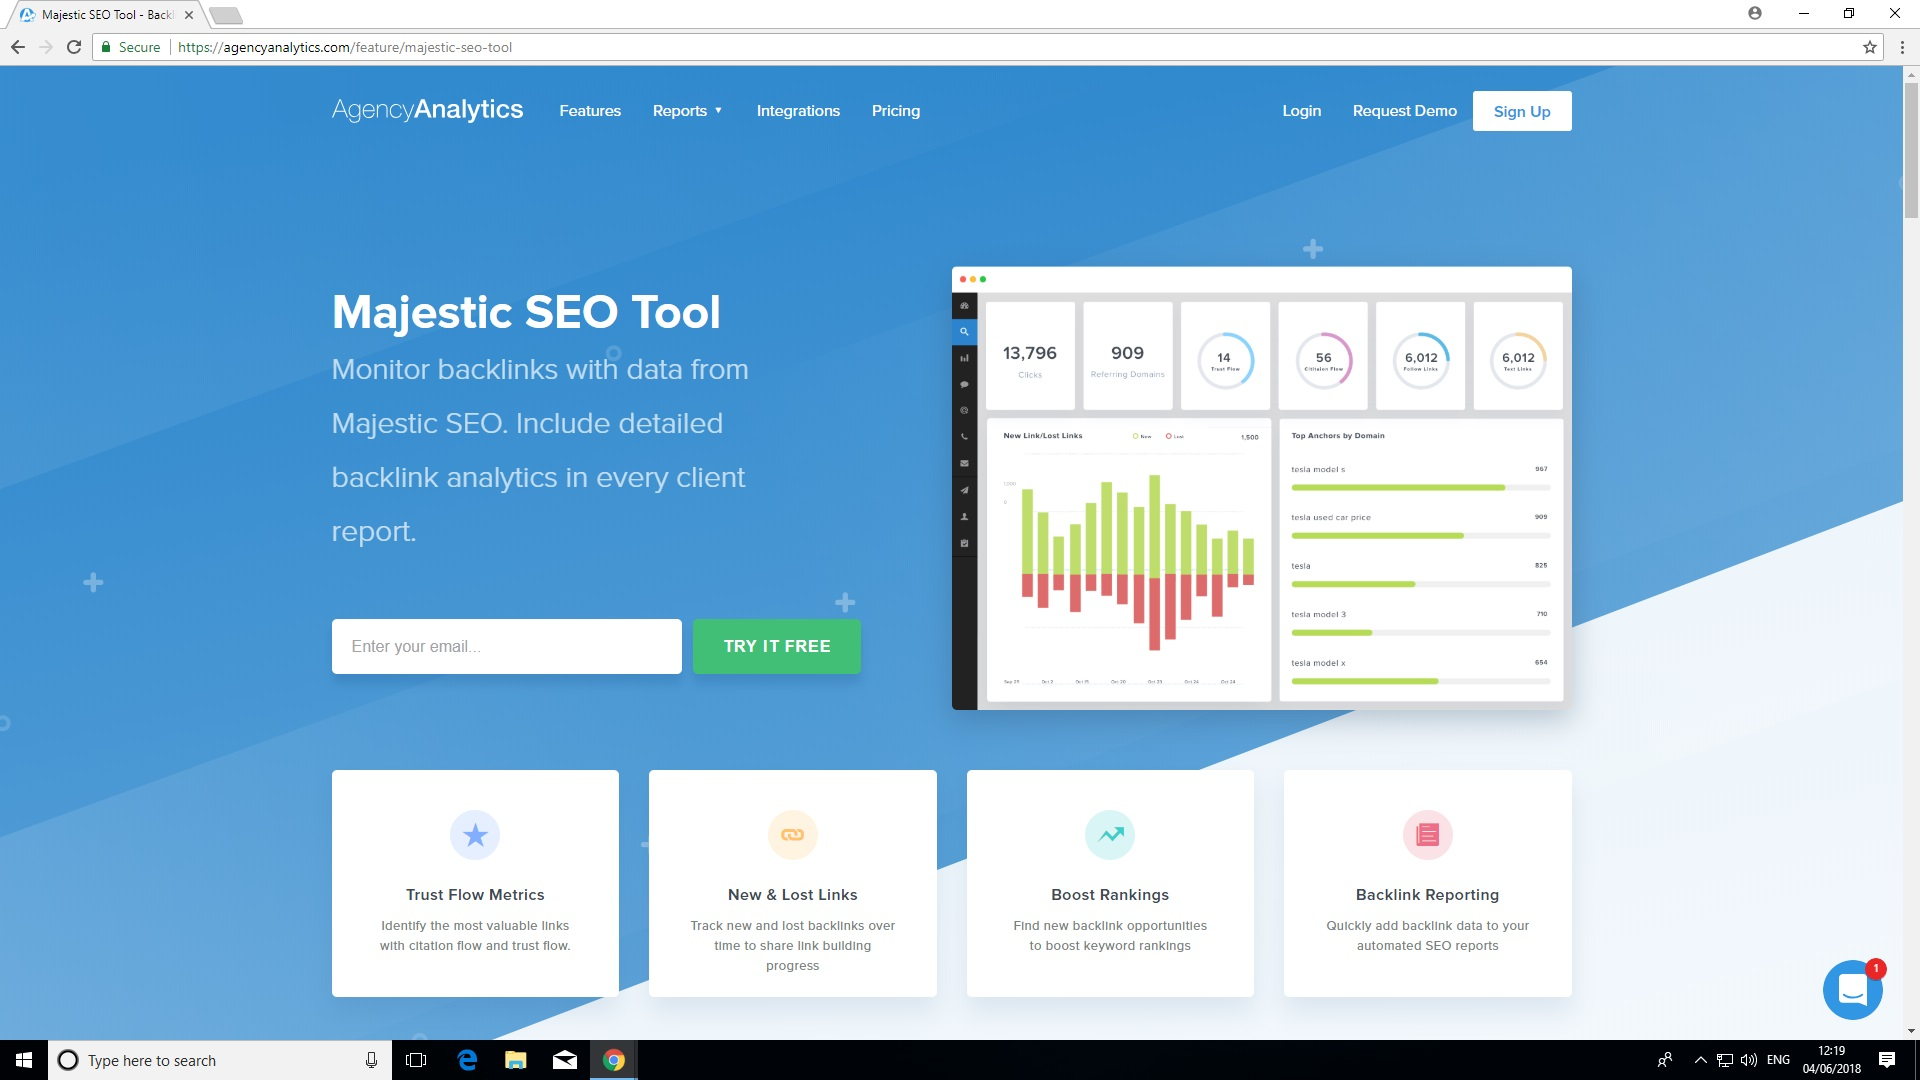 Majestic SEO Tools